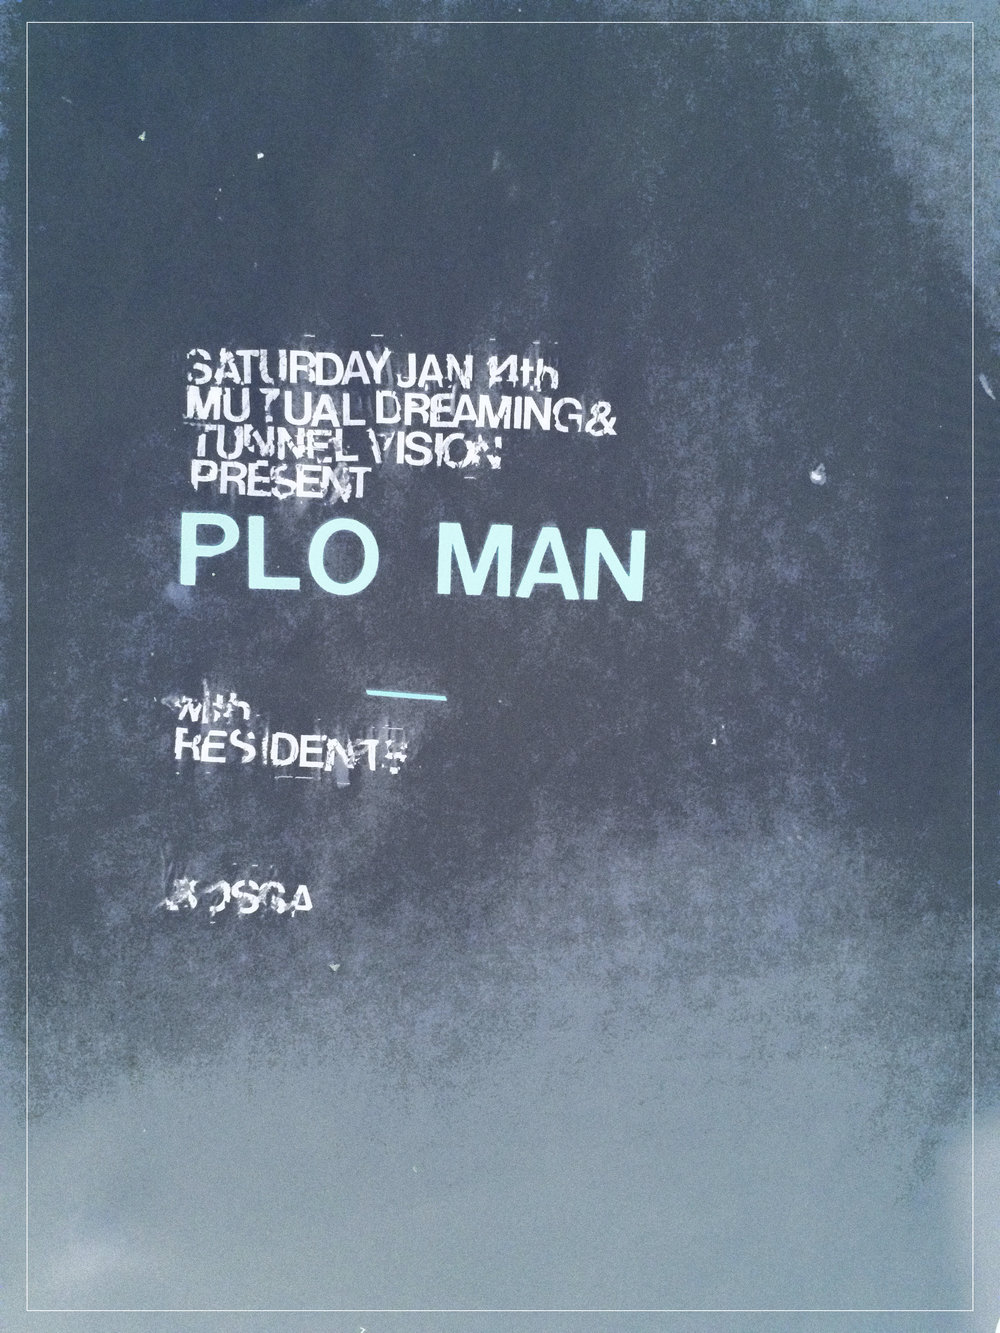 Mutual Dreaming & Tunnel Vision present PLO MAN (5 hour set), Residents  2017